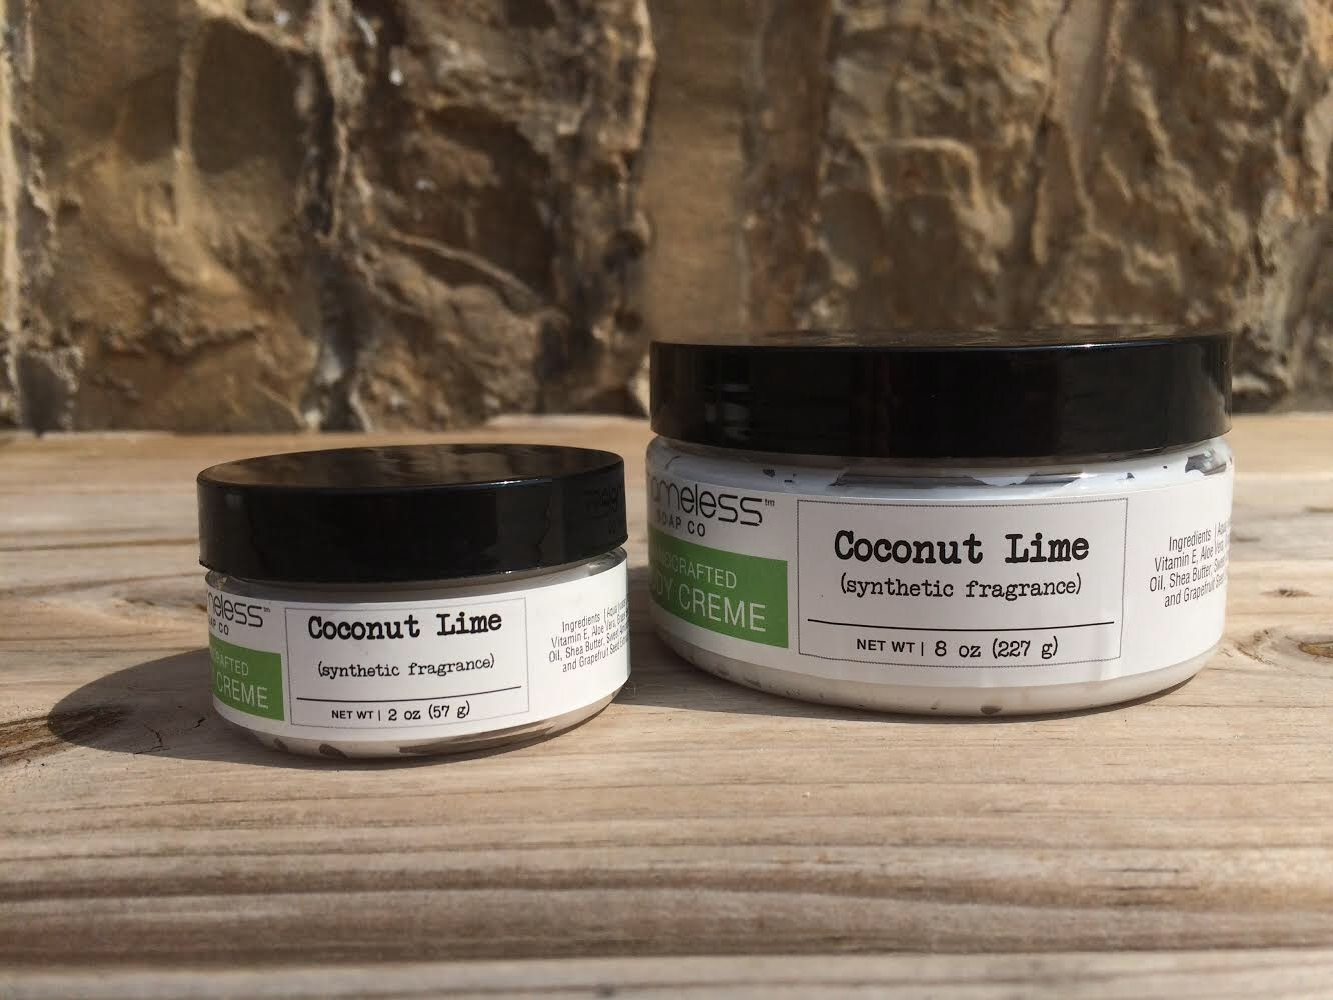 Coconut Lime Body Creme